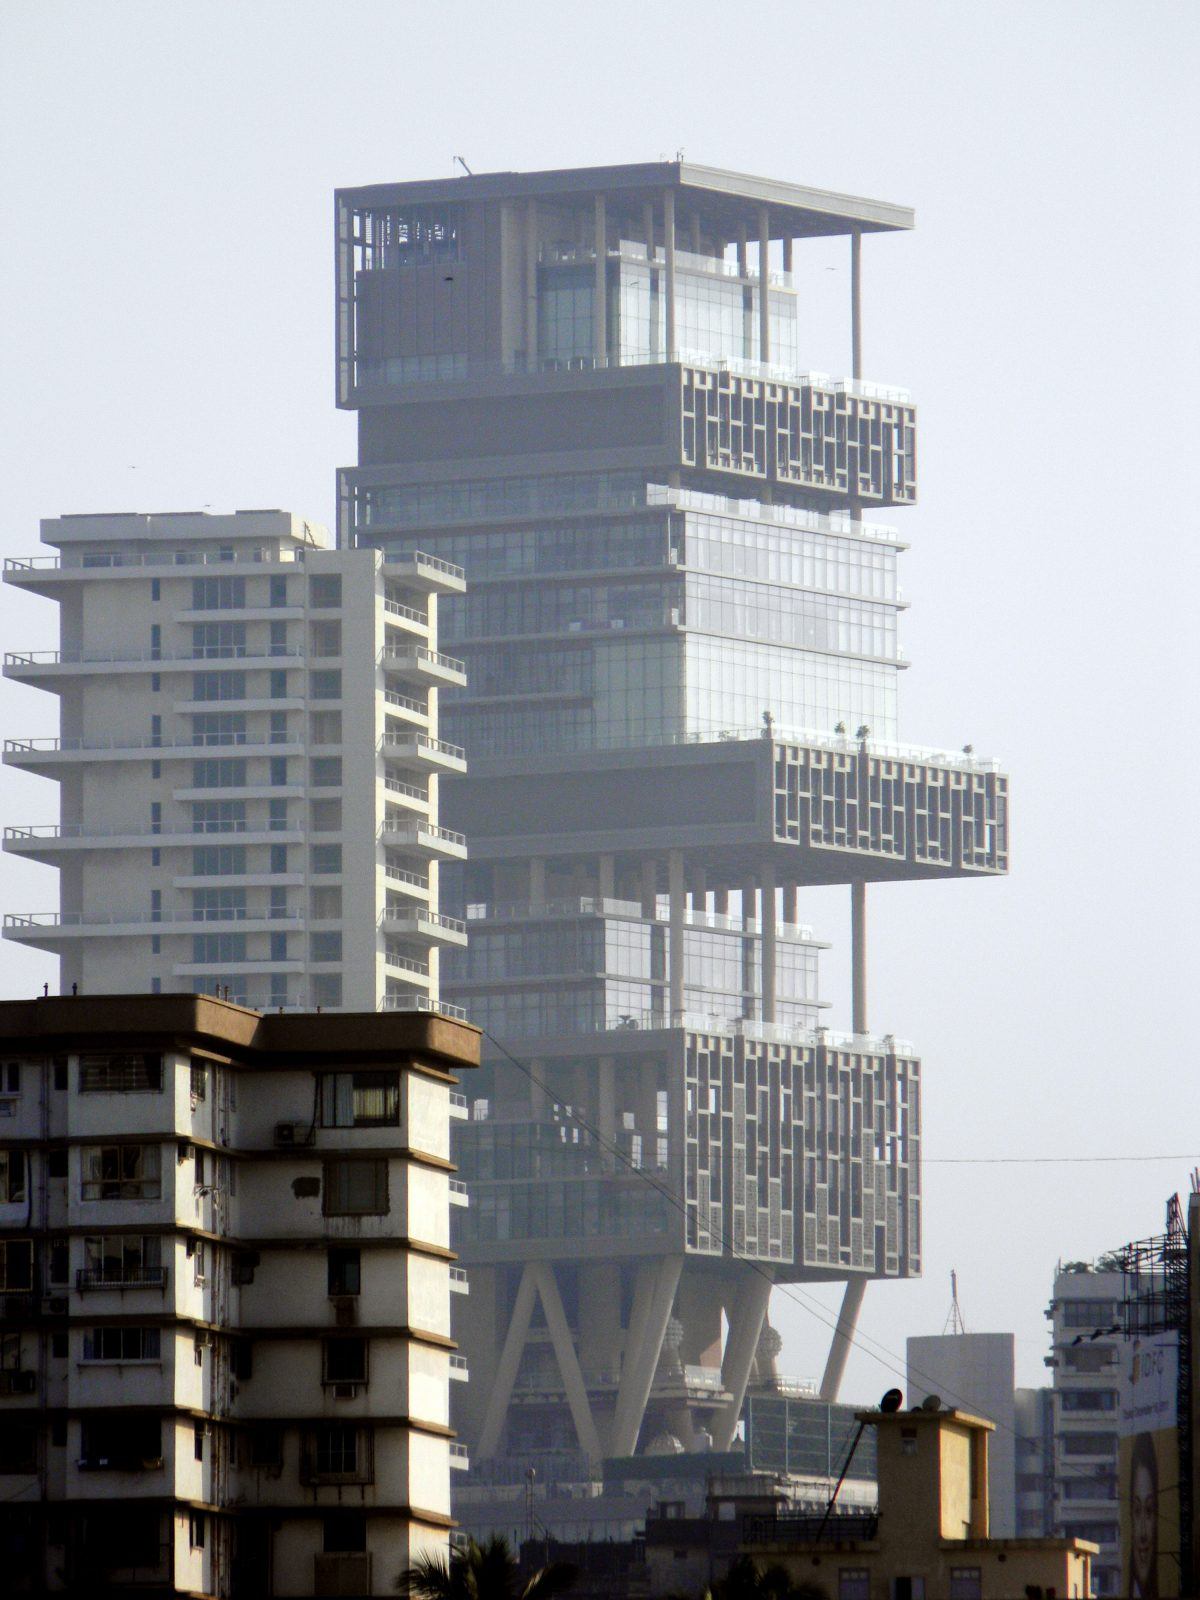 Ground level view of Antilia, Mumbai's most expensive house, towering over its surrounding buildings